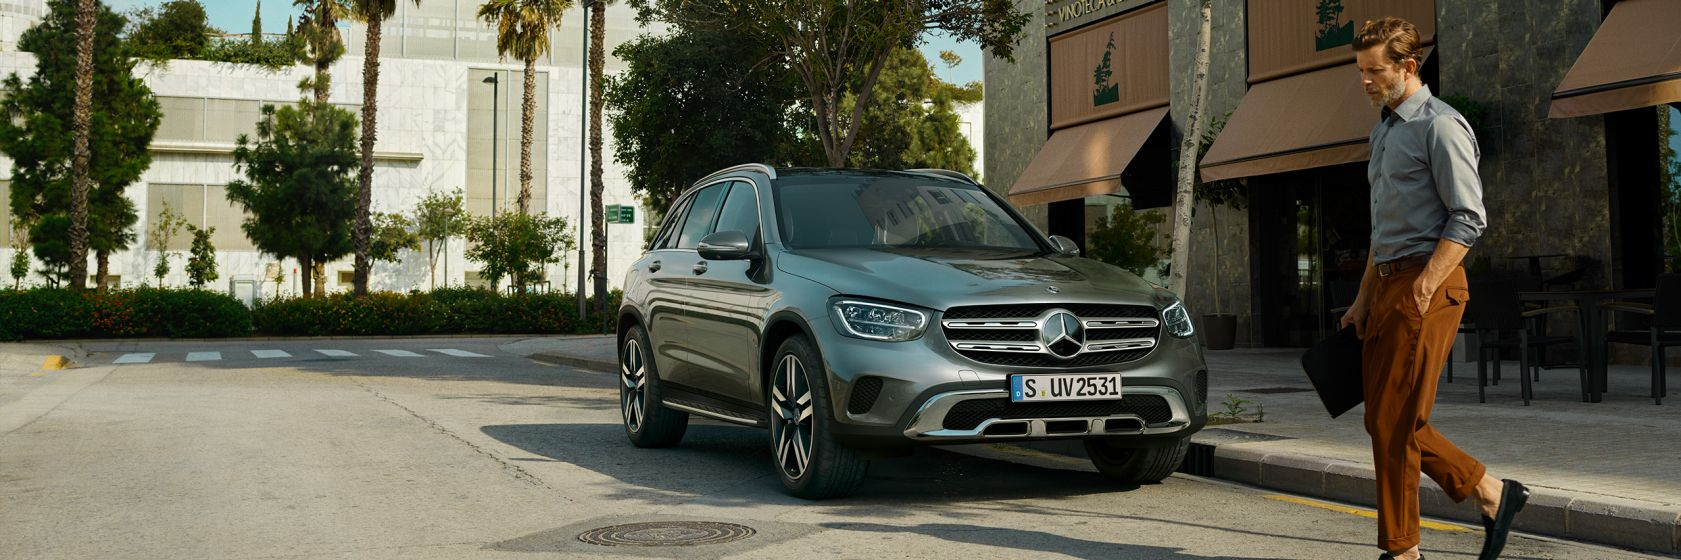 Цена Mercedes-Benz GLC 2021